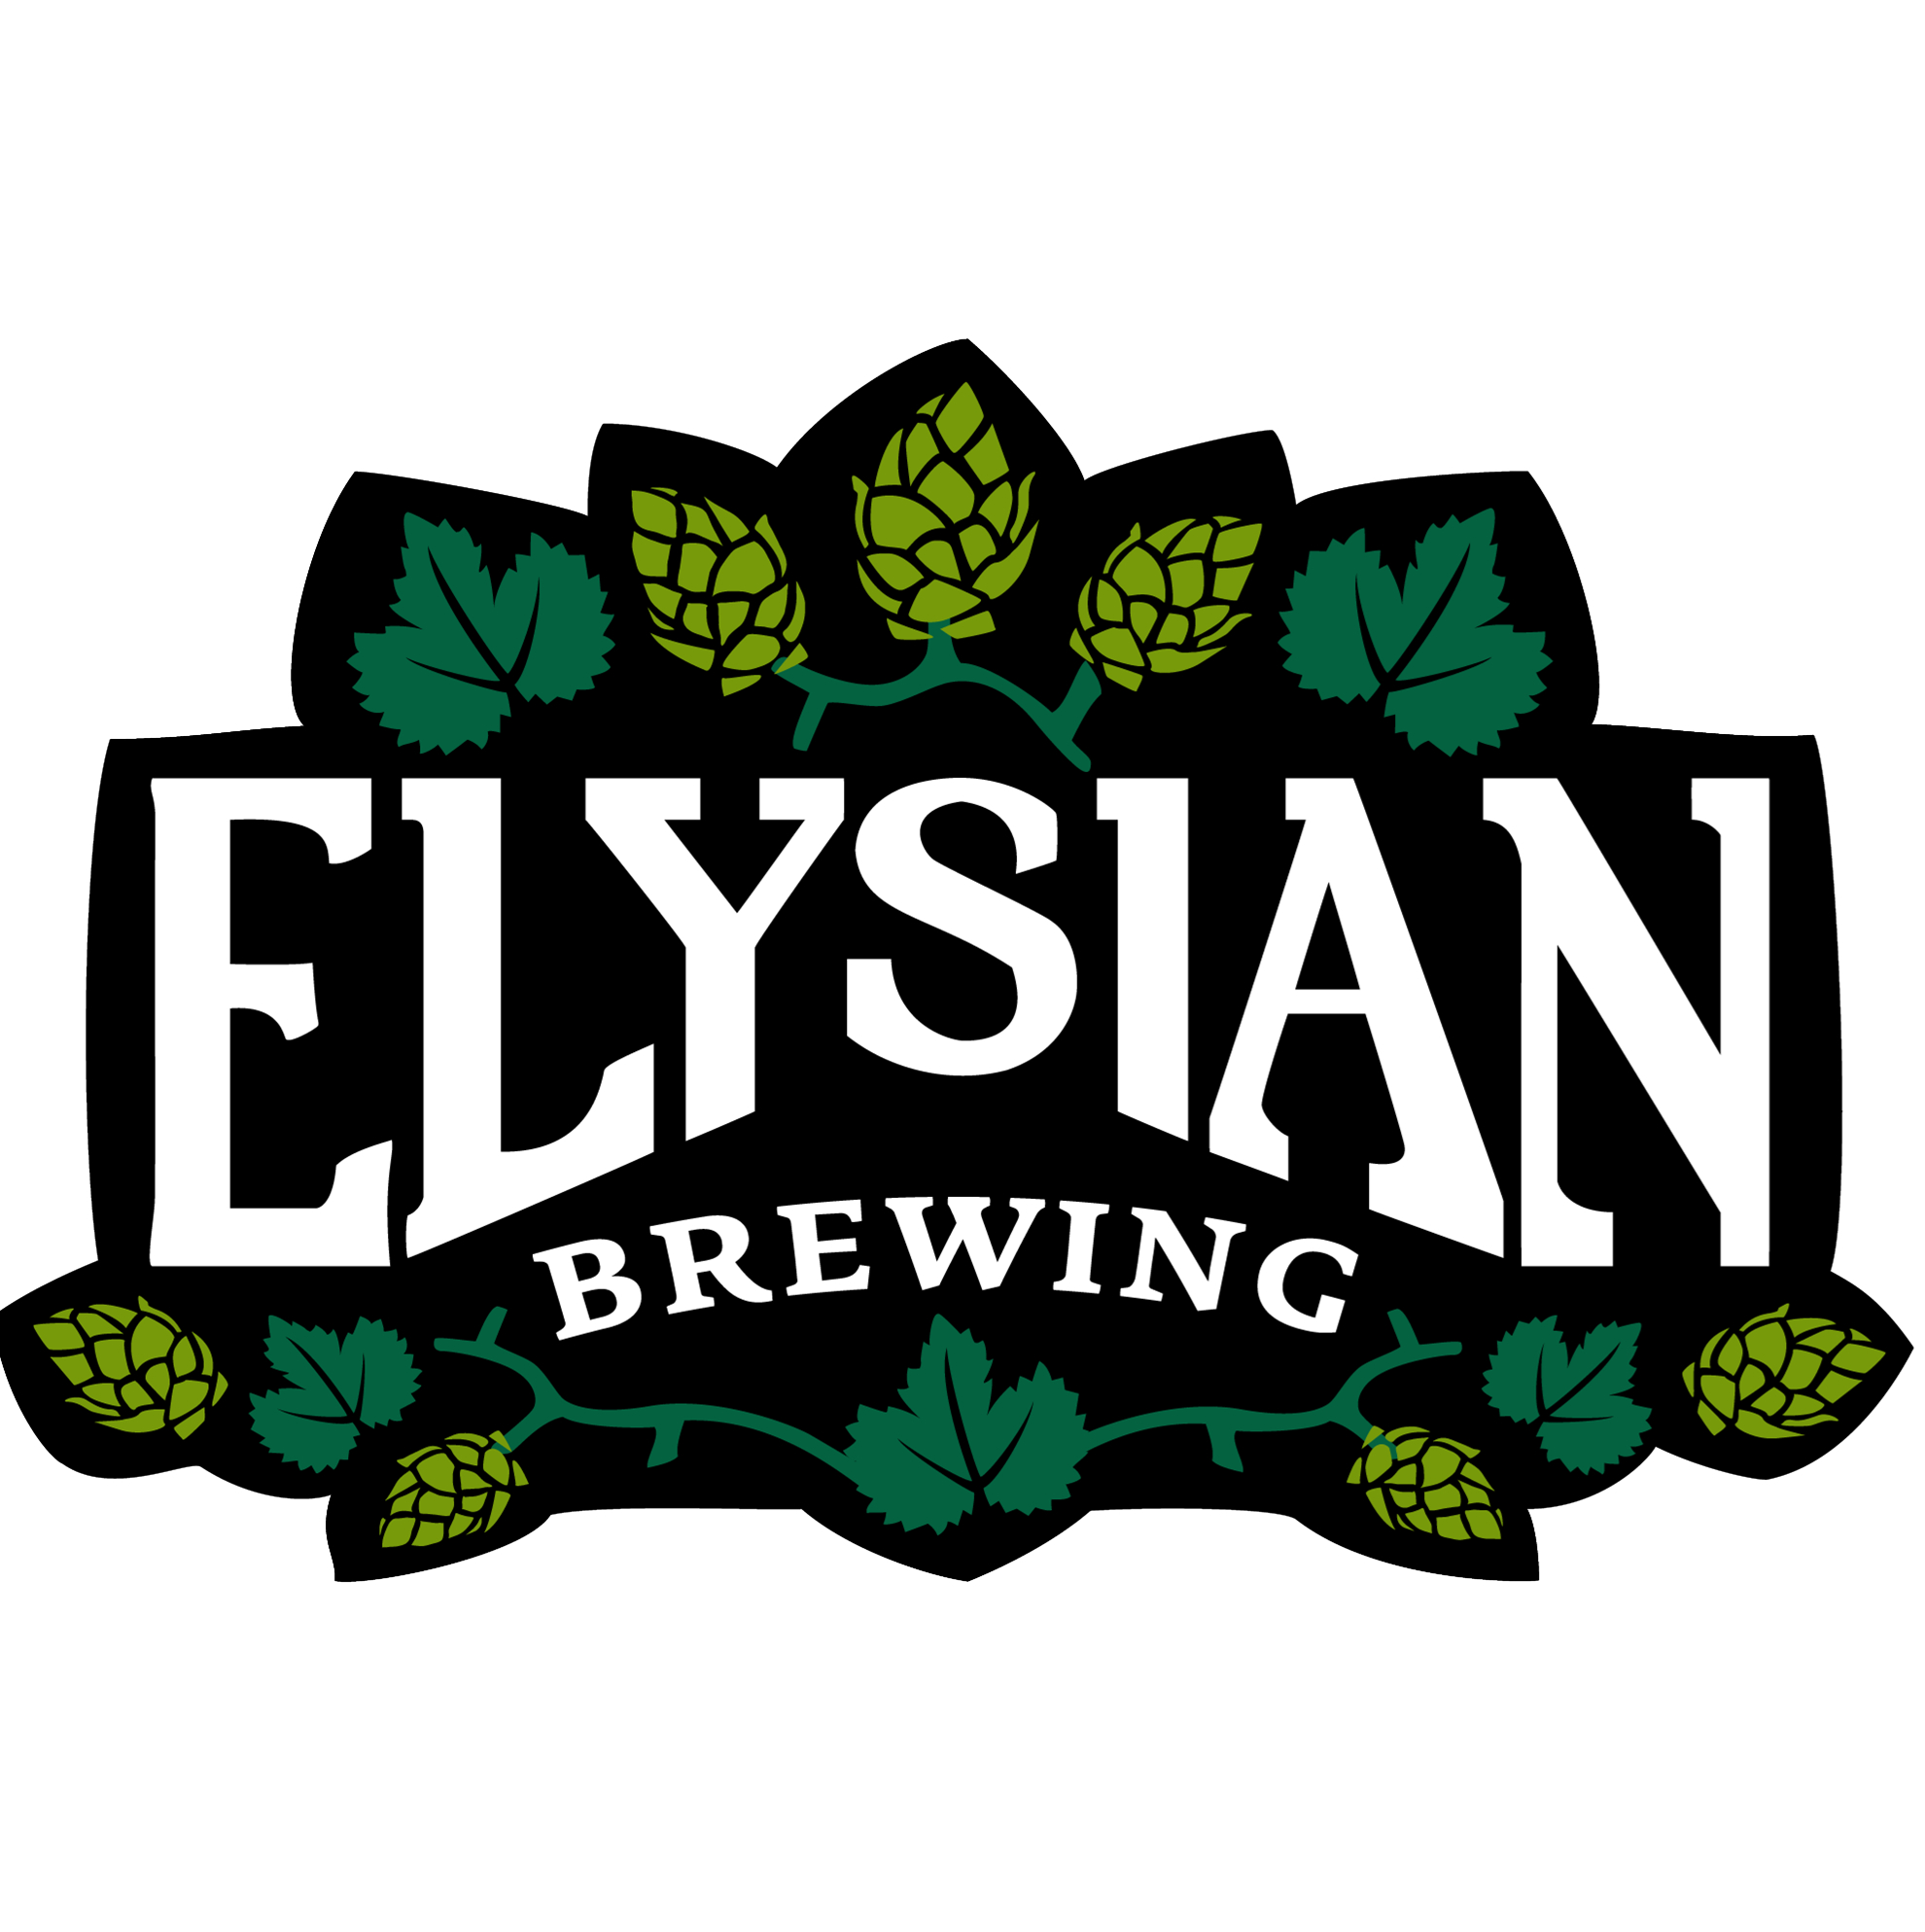 elysian_brewing3.jpg